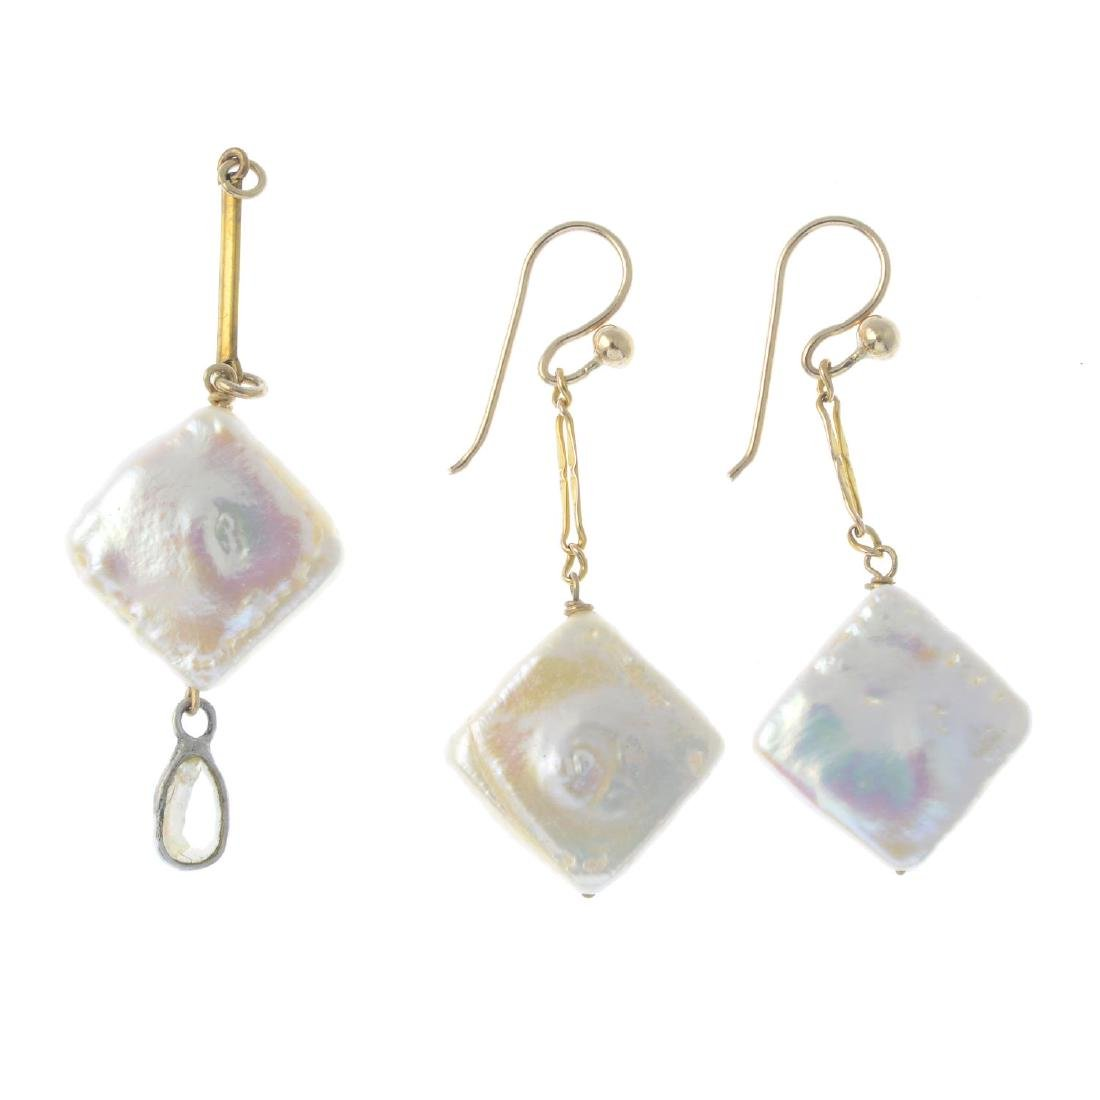 A set of cultured freshwater pearl and gem-set